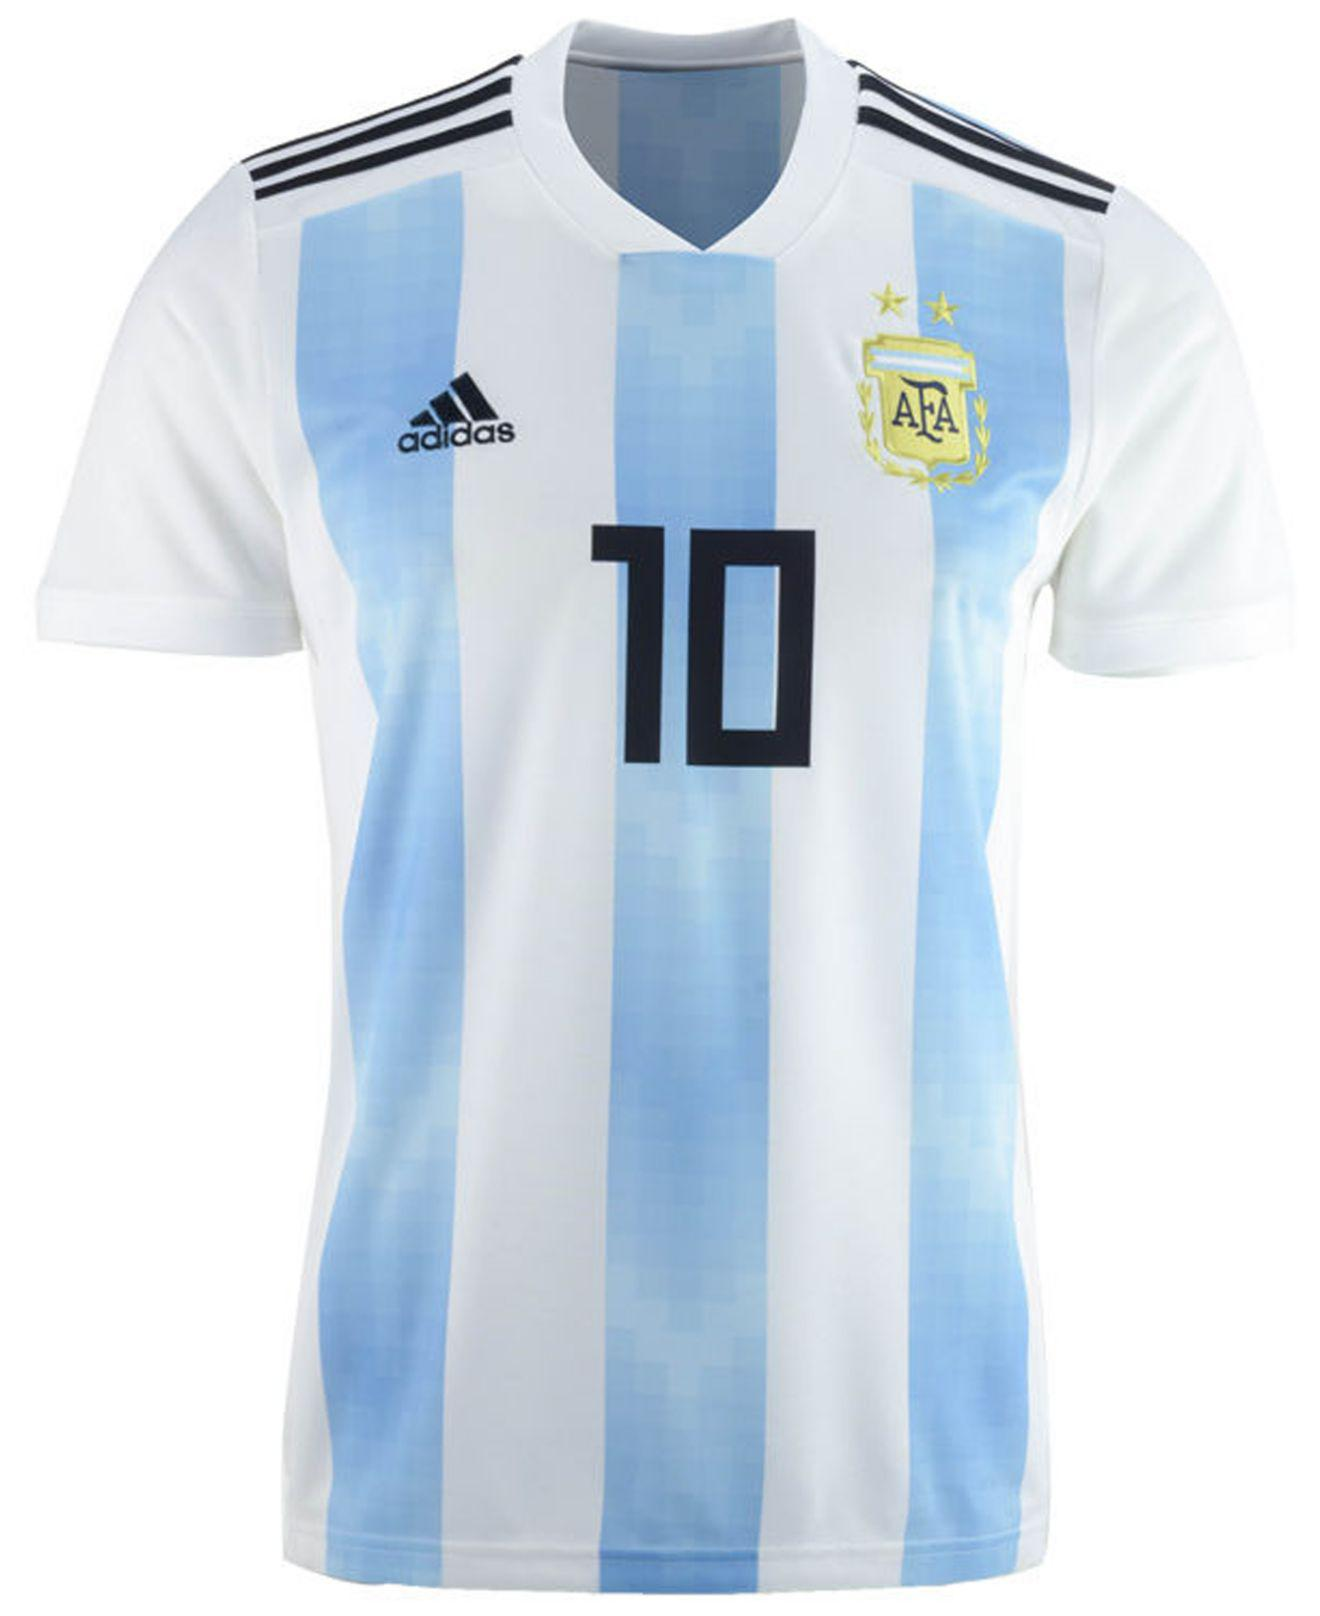 e247b9102 adidas Lionel Messi Argentina National Team Home Stadium Jersey in Blue for  Men - Save 50% - Lyst